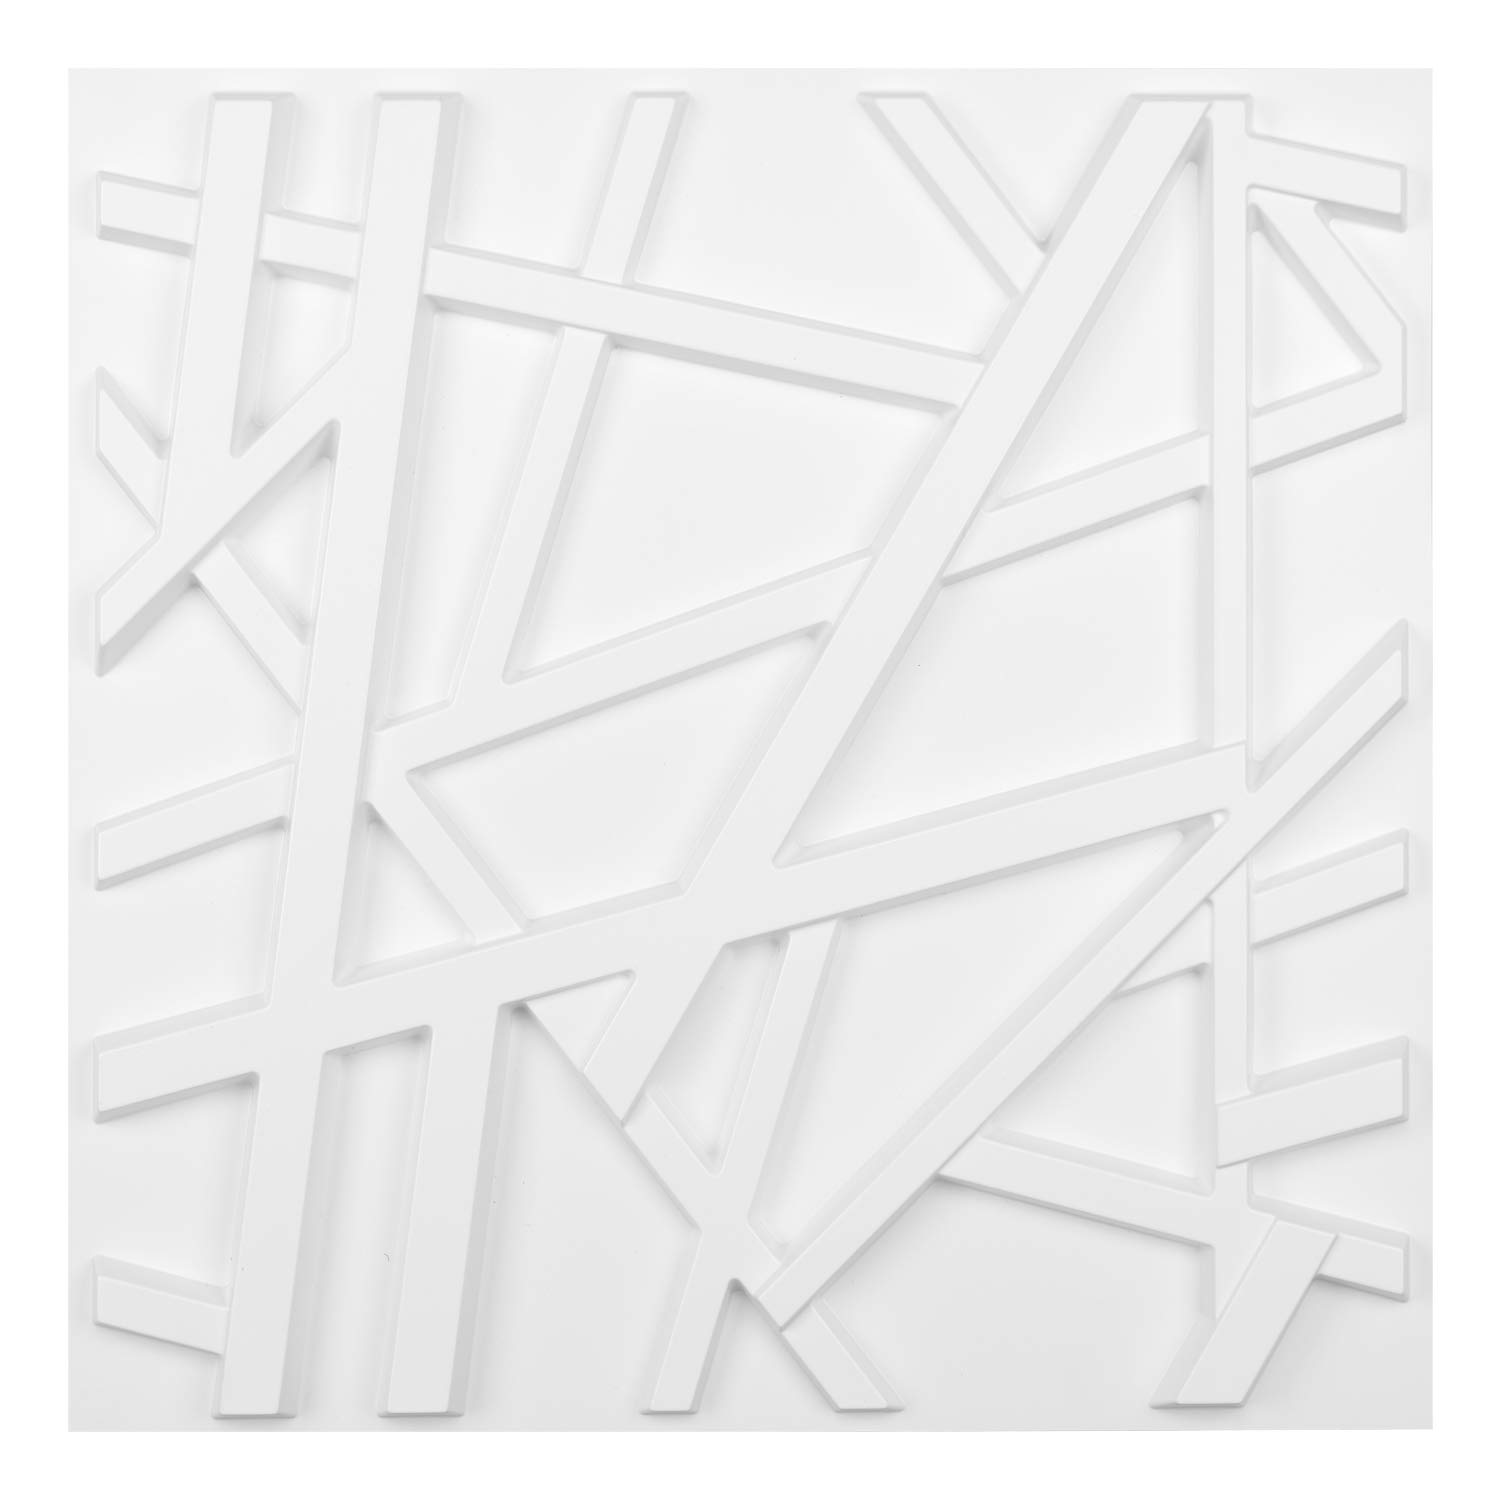 A10045 - Matt White PVC 3D Wall Panel Geometric Crossing Lines Cover 32 Sqft, for Residential and Commercial Interior Decor